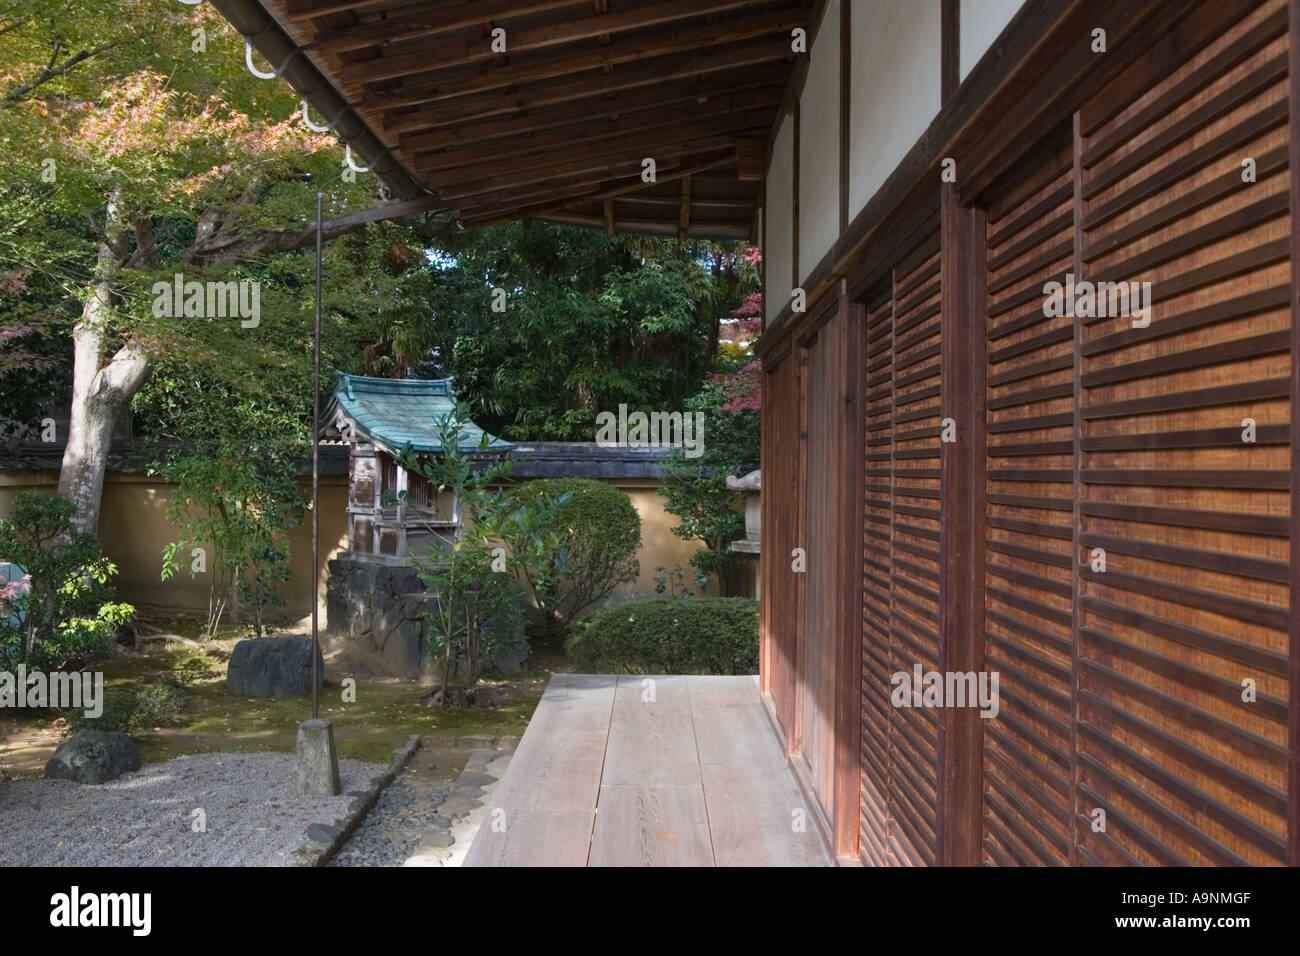 Zen rock garden and veranda at Korin-in, which is a subtemple of Daitokuji Temple, Kyoto, JapanStock Photo